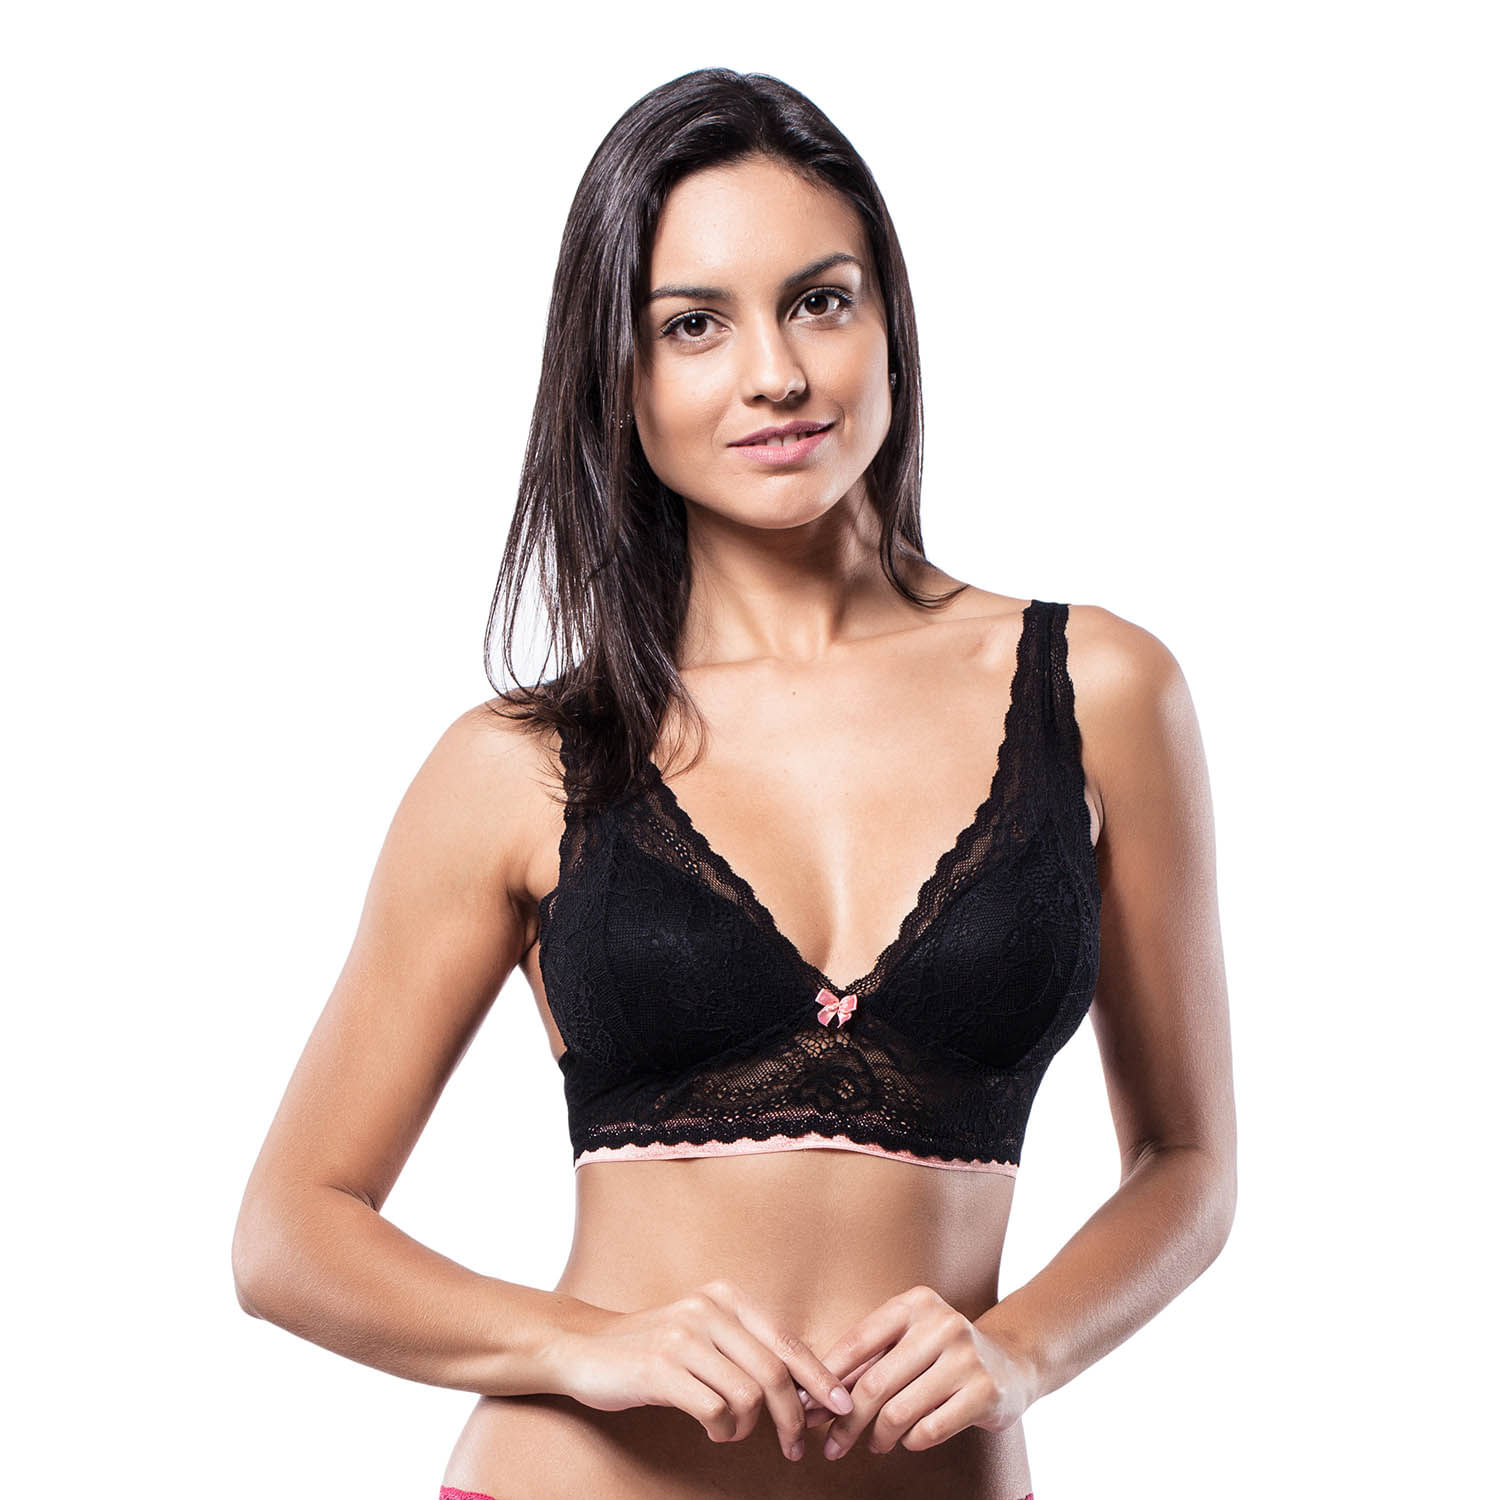 Sutiã Top Push Up Renda Preto  63608968388